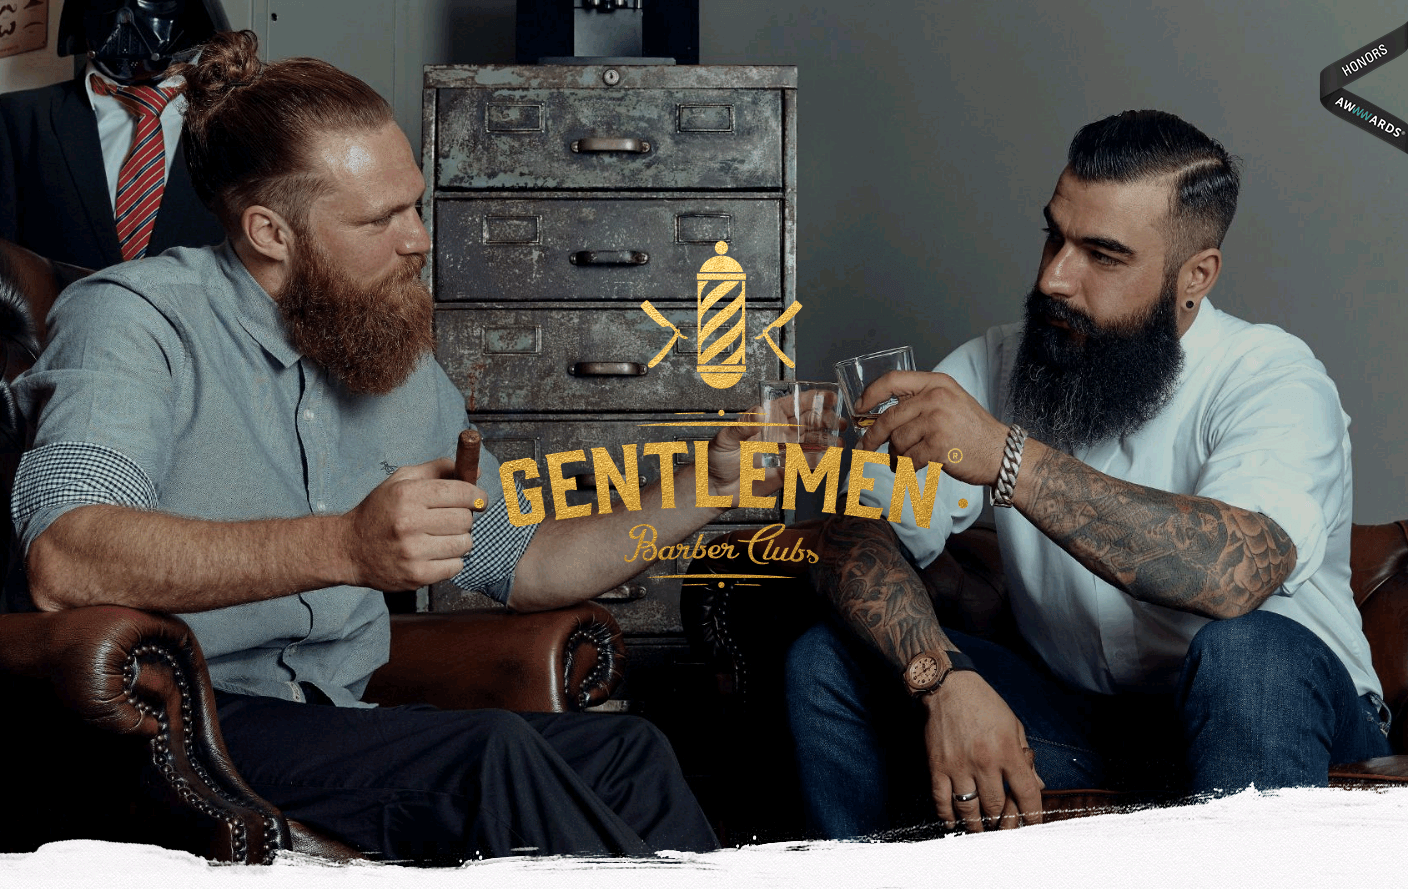 Gentlemen Barber Clubs